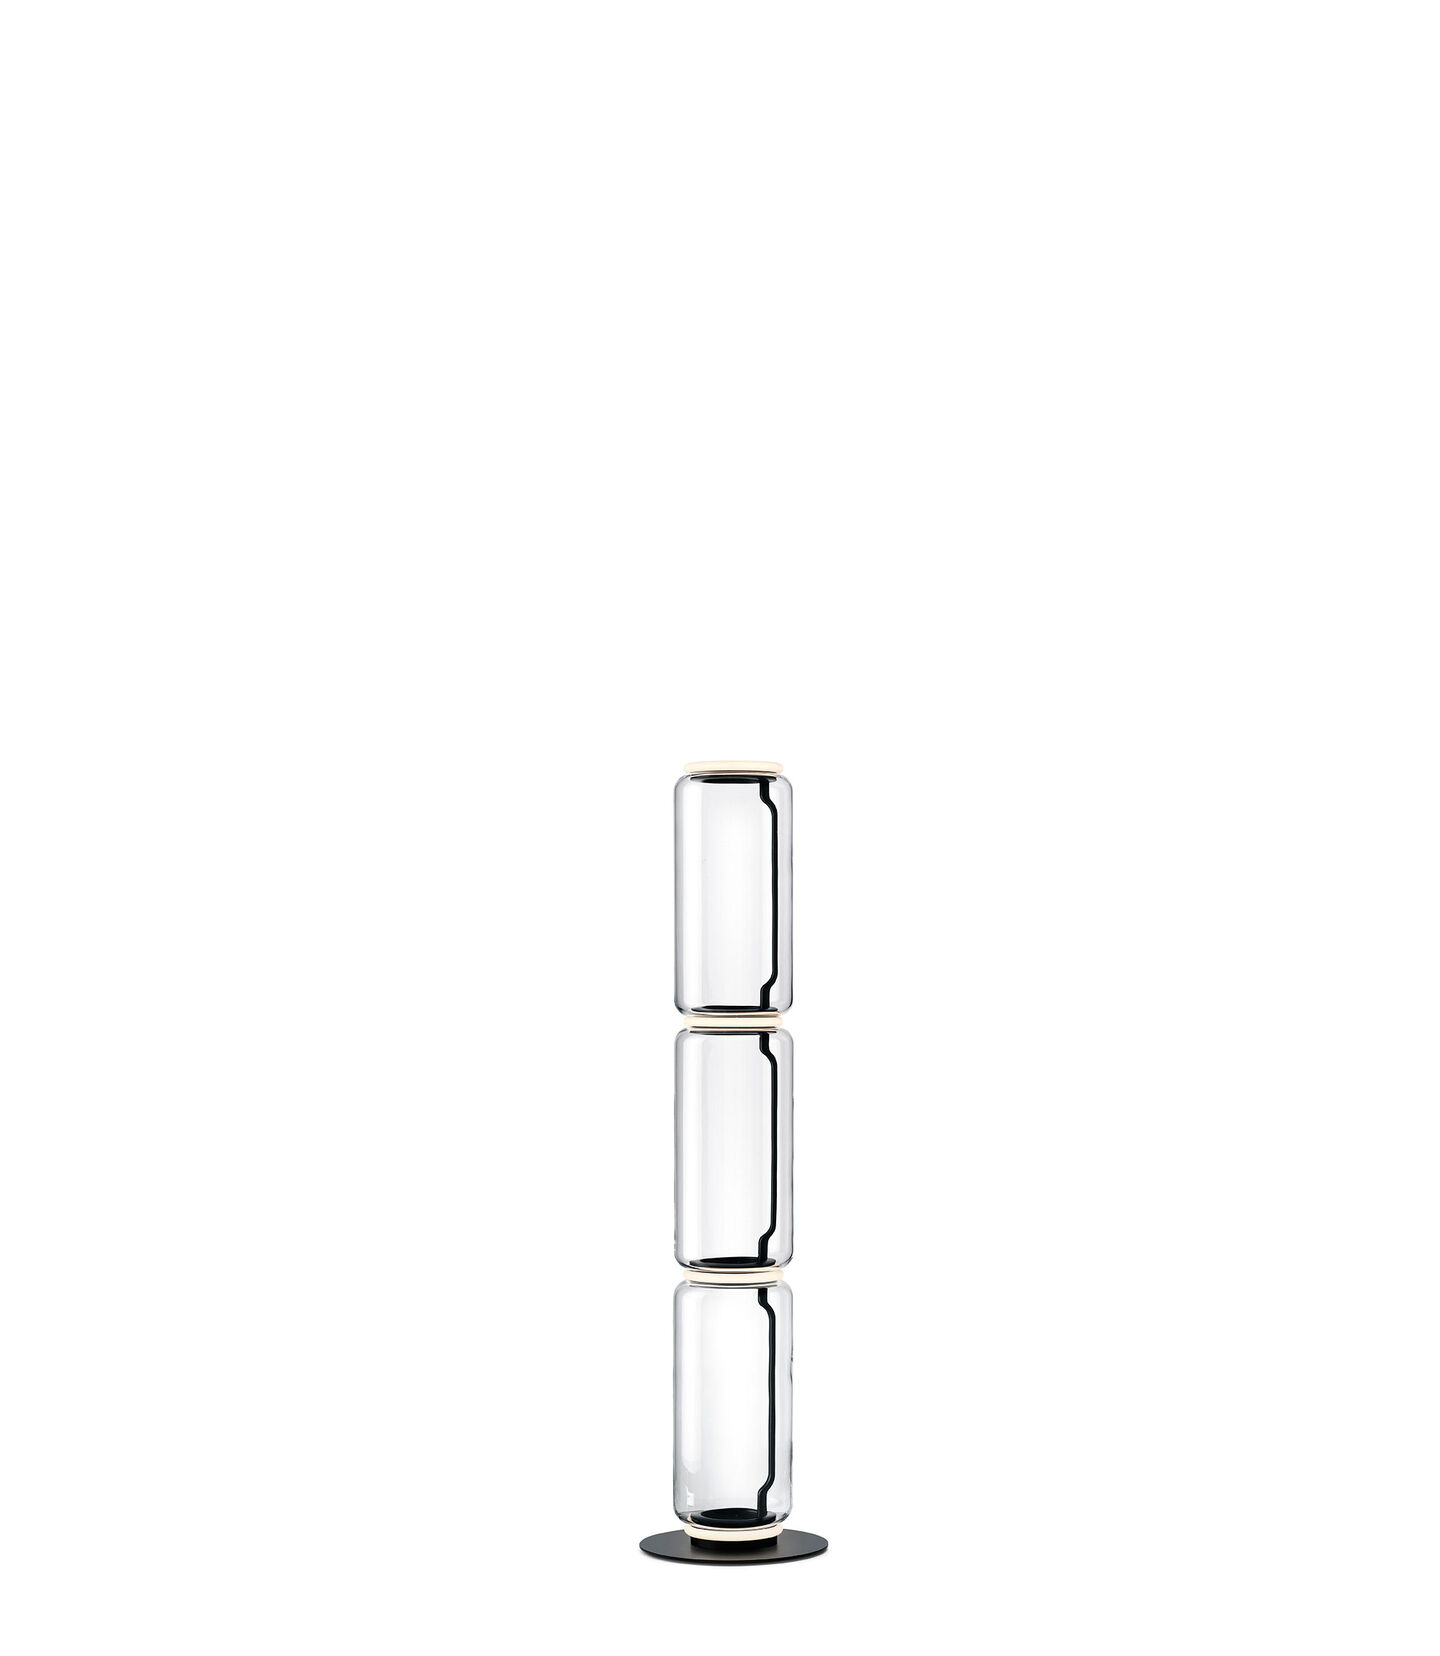 noctambule-floor-3-high-cylinders-and-cone-small-base-grcic-flos-F0287000-product-still-life-big